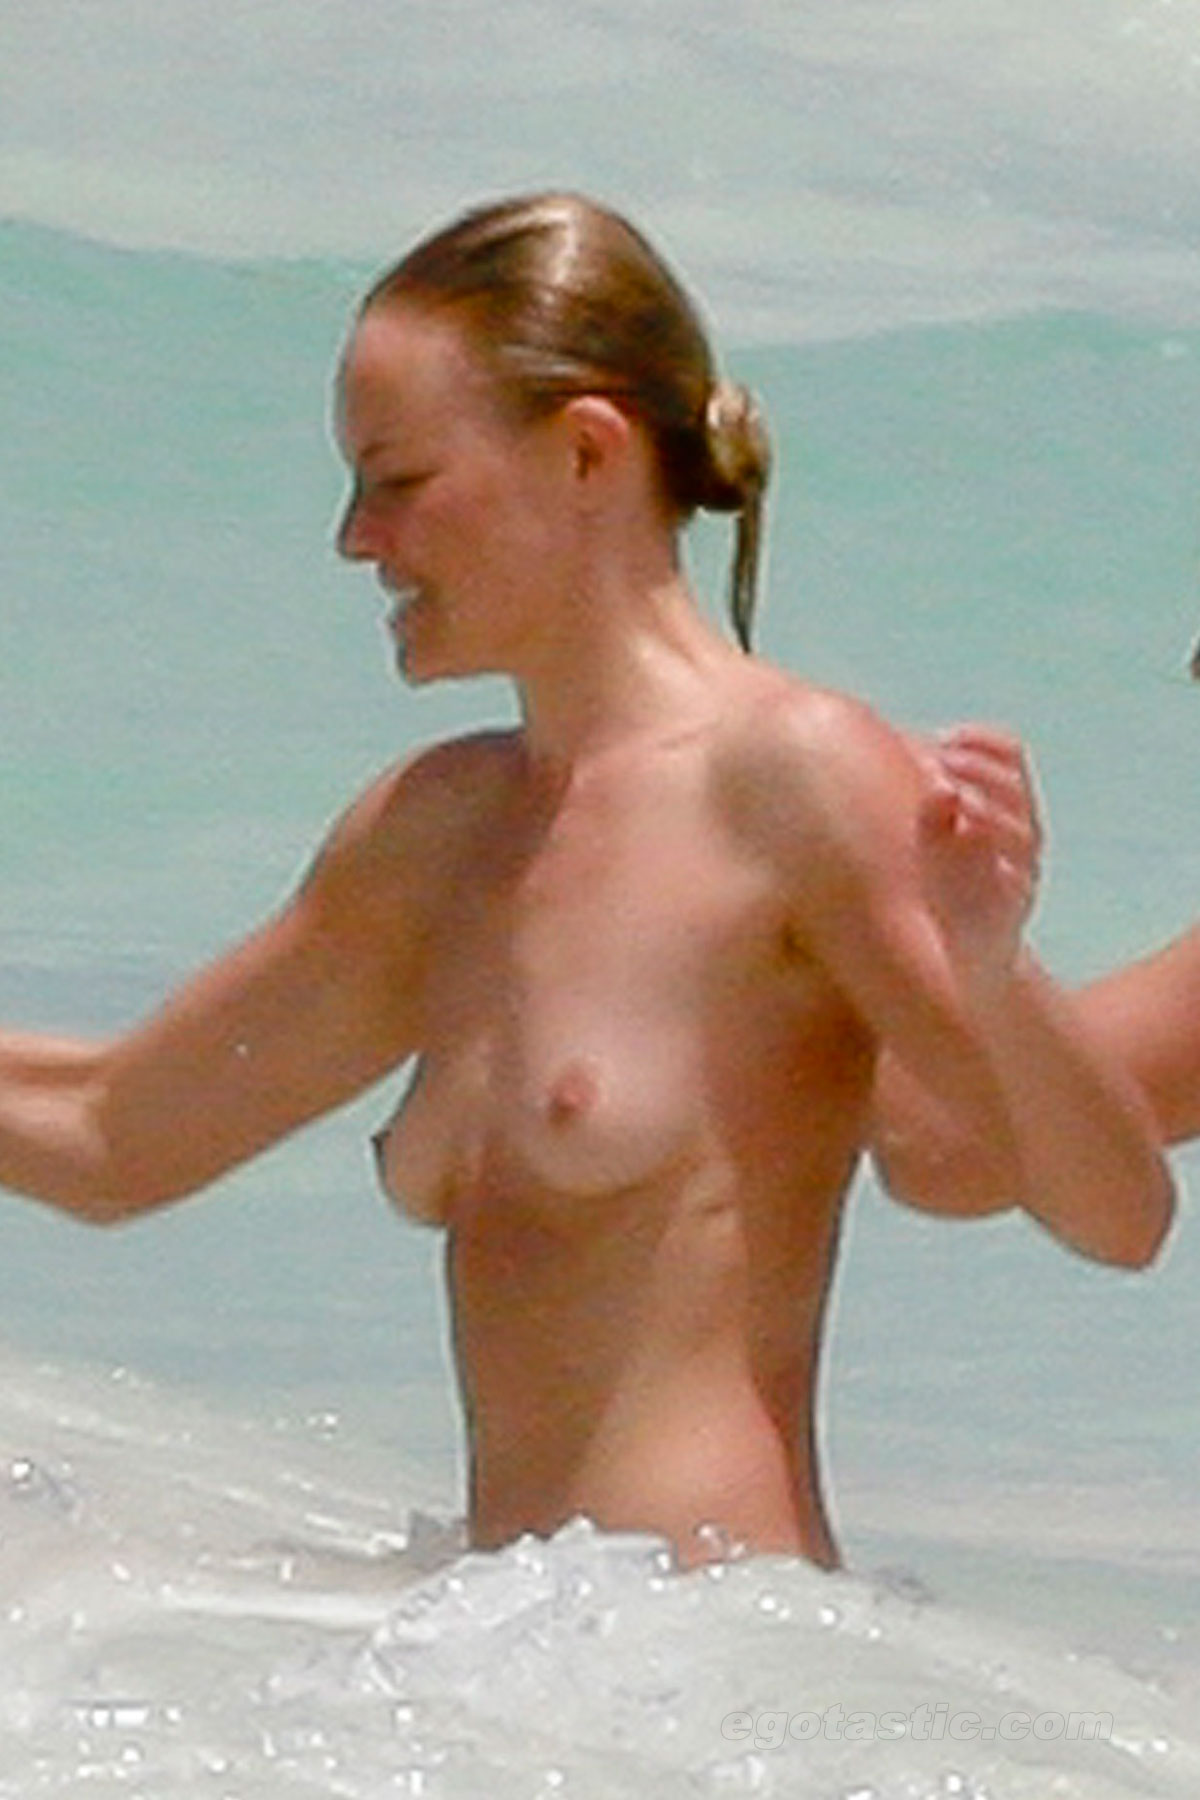 Tits Kate Bosworth nudes (91 photos), Topless, Is a cute, Instagram, cameltoe 2017